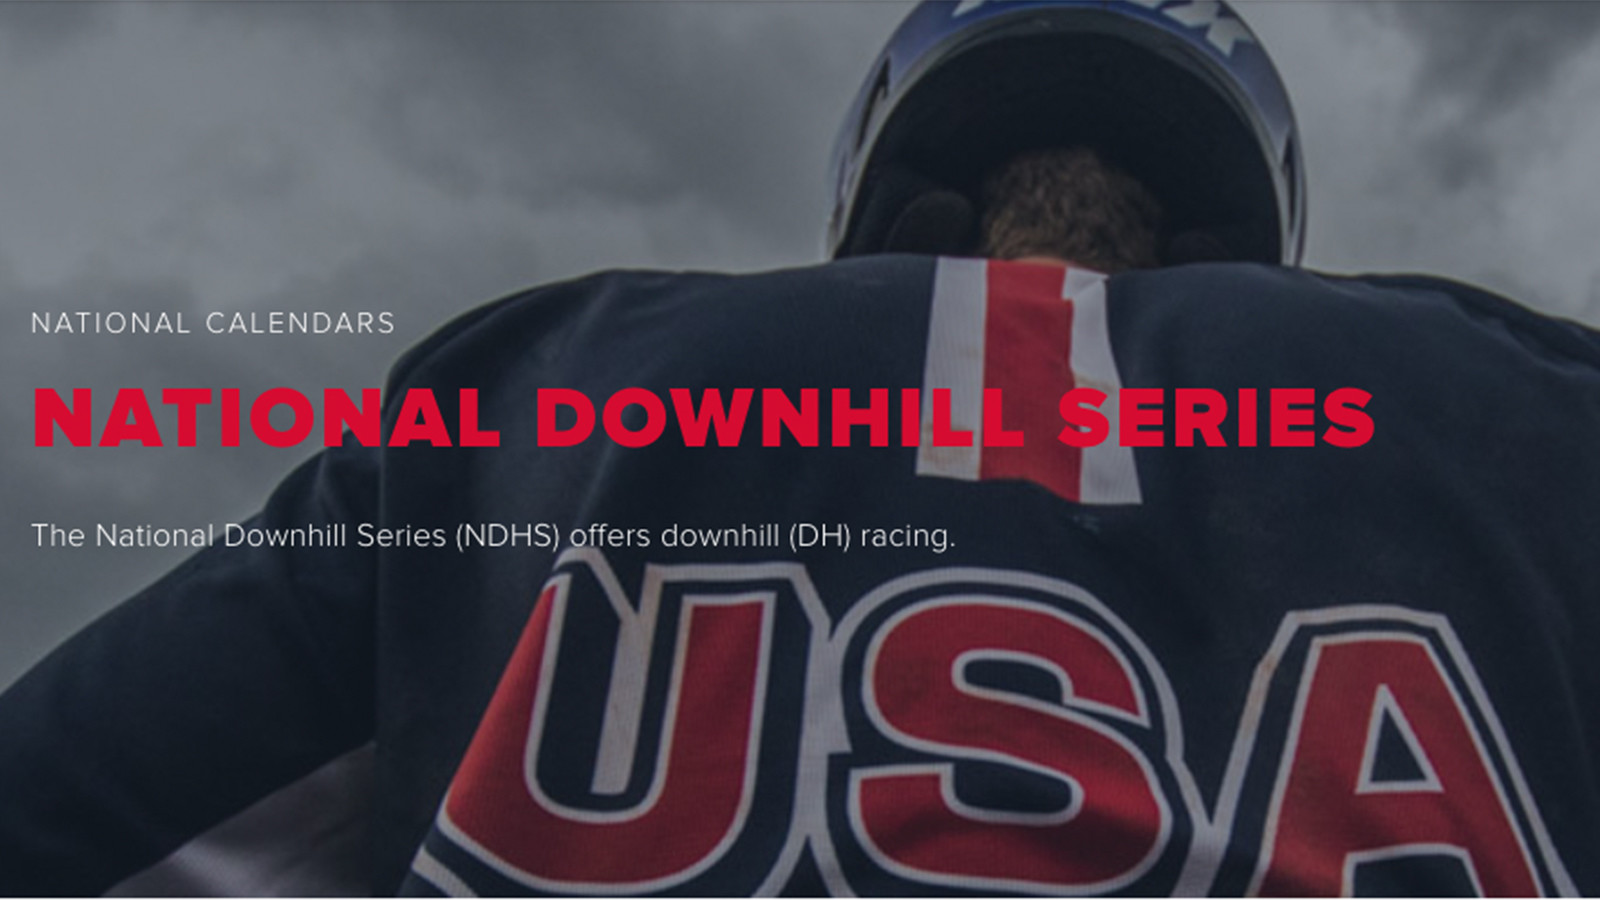 USAC Announces 2021 National Downhill Series with Just Three Races